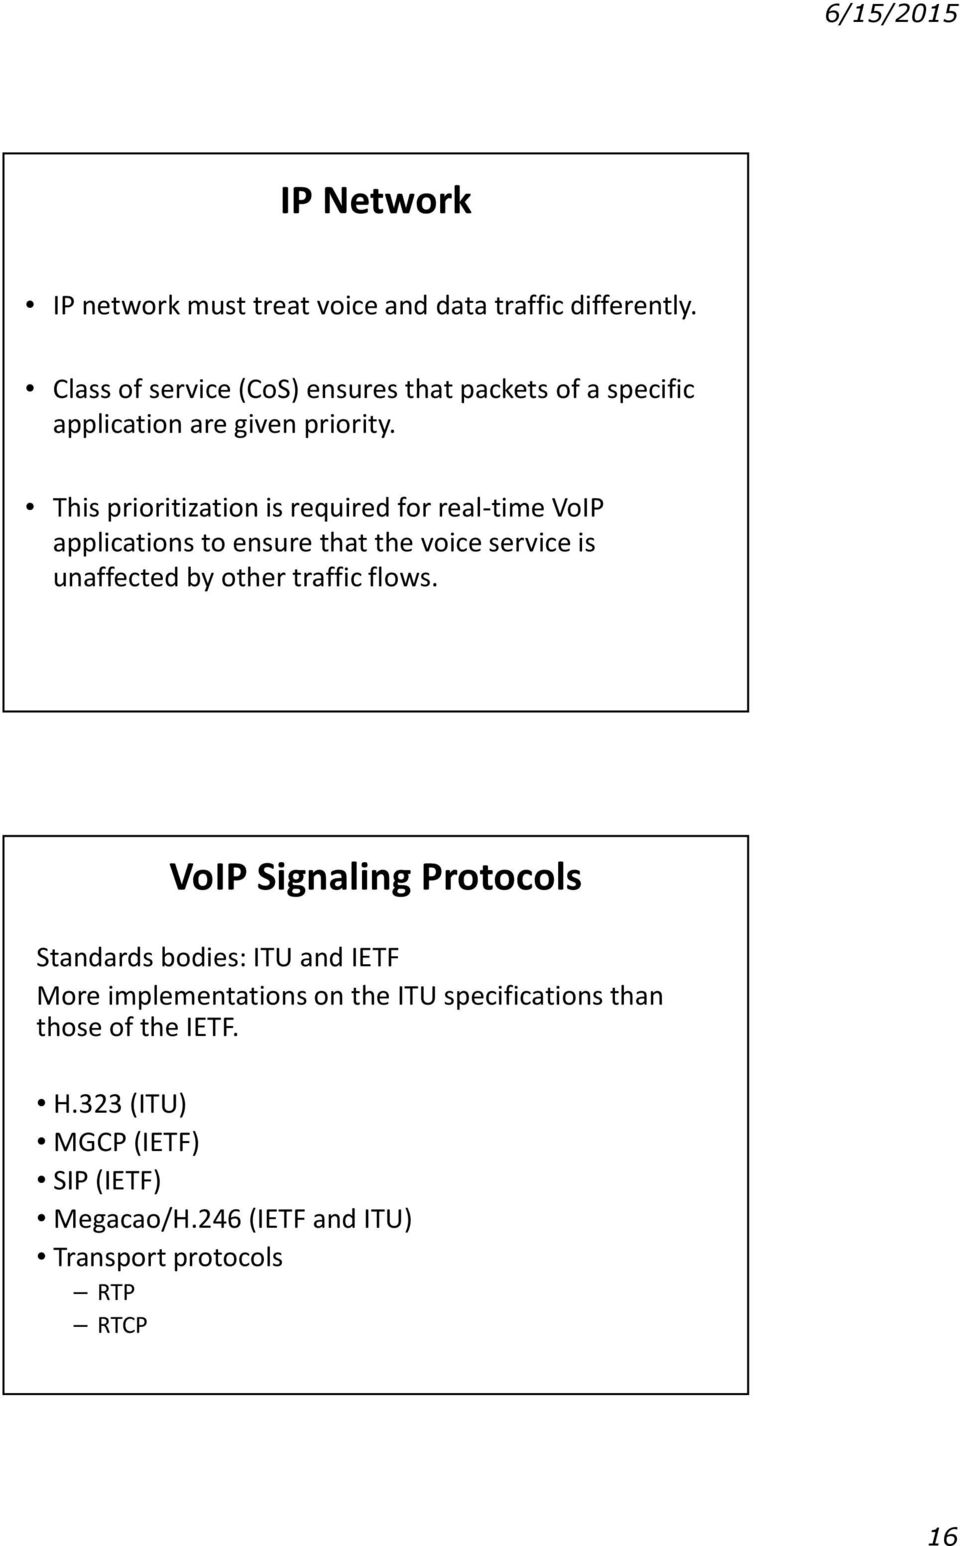 This prioritization is required for real-time VoIP applications to ensure that the voice service is unaffected by other traffic